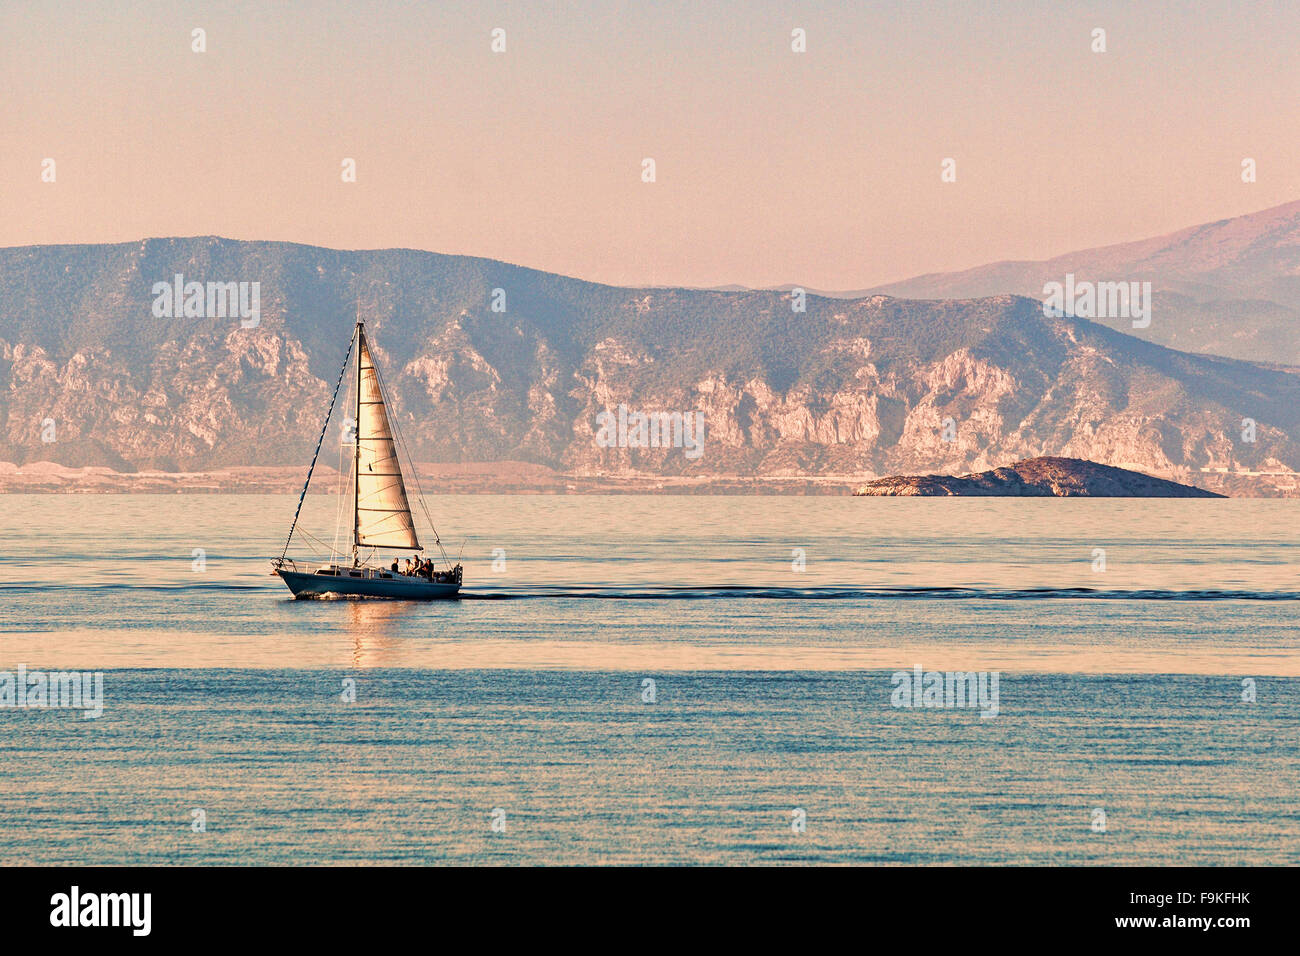 A sail boat in Agistri island, Greece - Stock Image